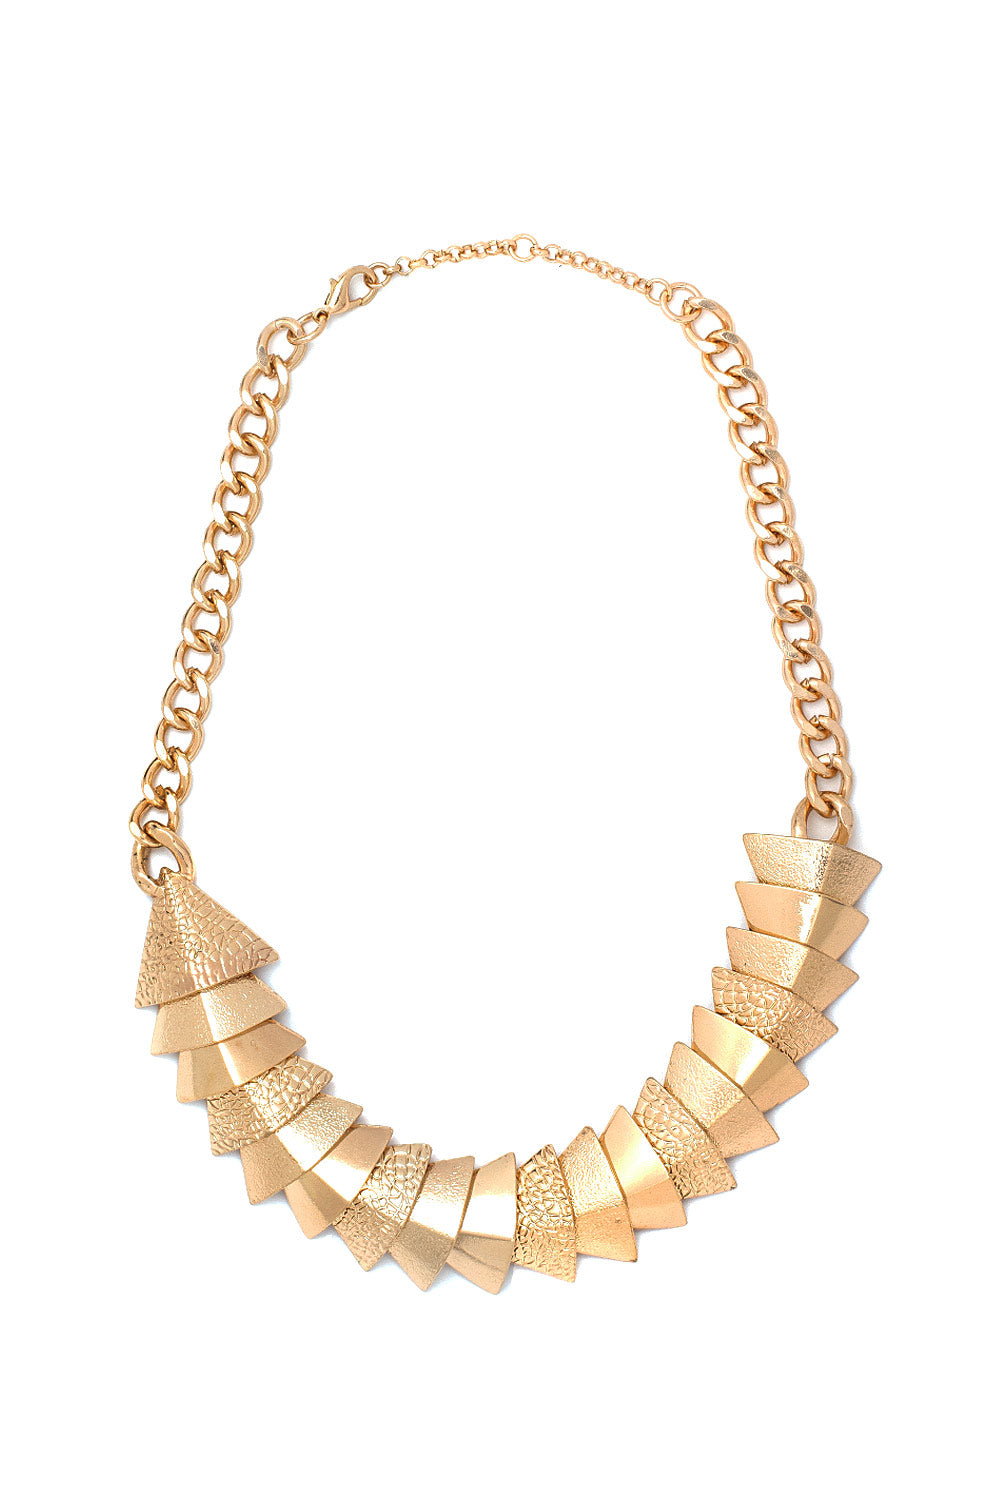 Type 3 Golden Scales Necklace